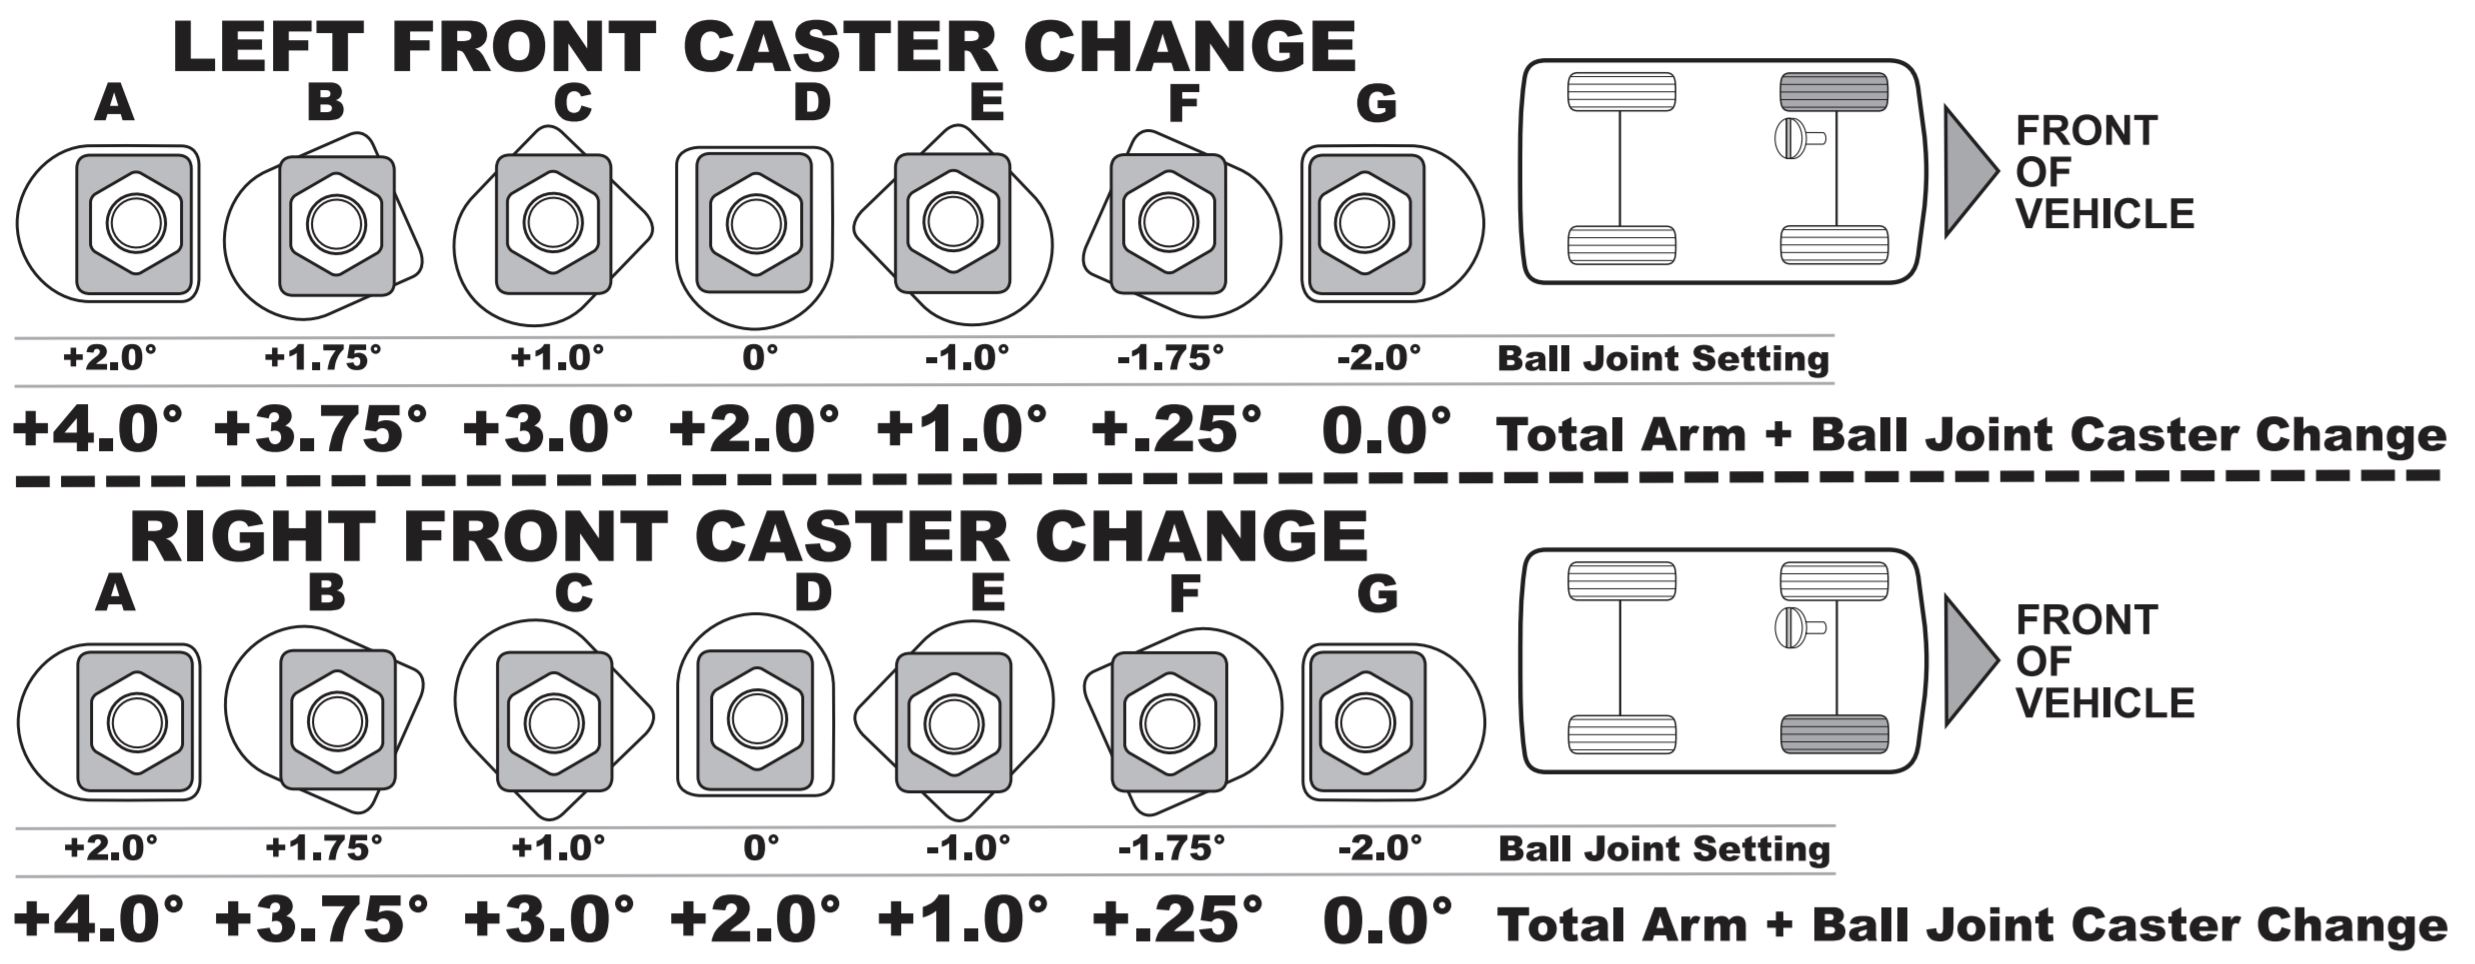 SPC Upper Control Arm (UCA) Caster Plate Adjustment Chart/Diagram for Toyota Tacoma